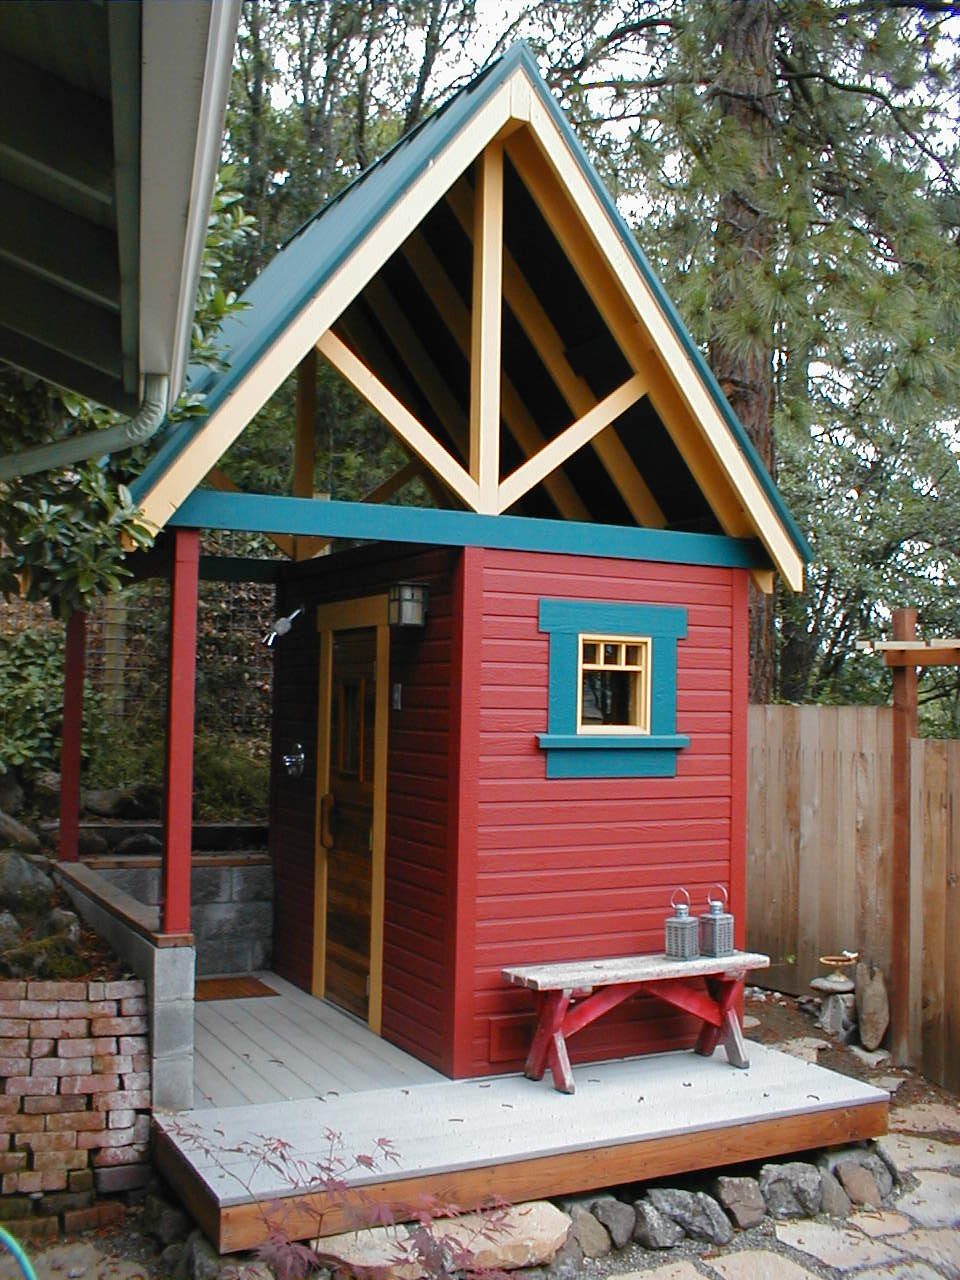 This Backyard Sauna Successfully Screens Views To And From A Nearby  Neighbor And Becomes A Playful Element In A Small Backyard. The Owners Were  Interested ...